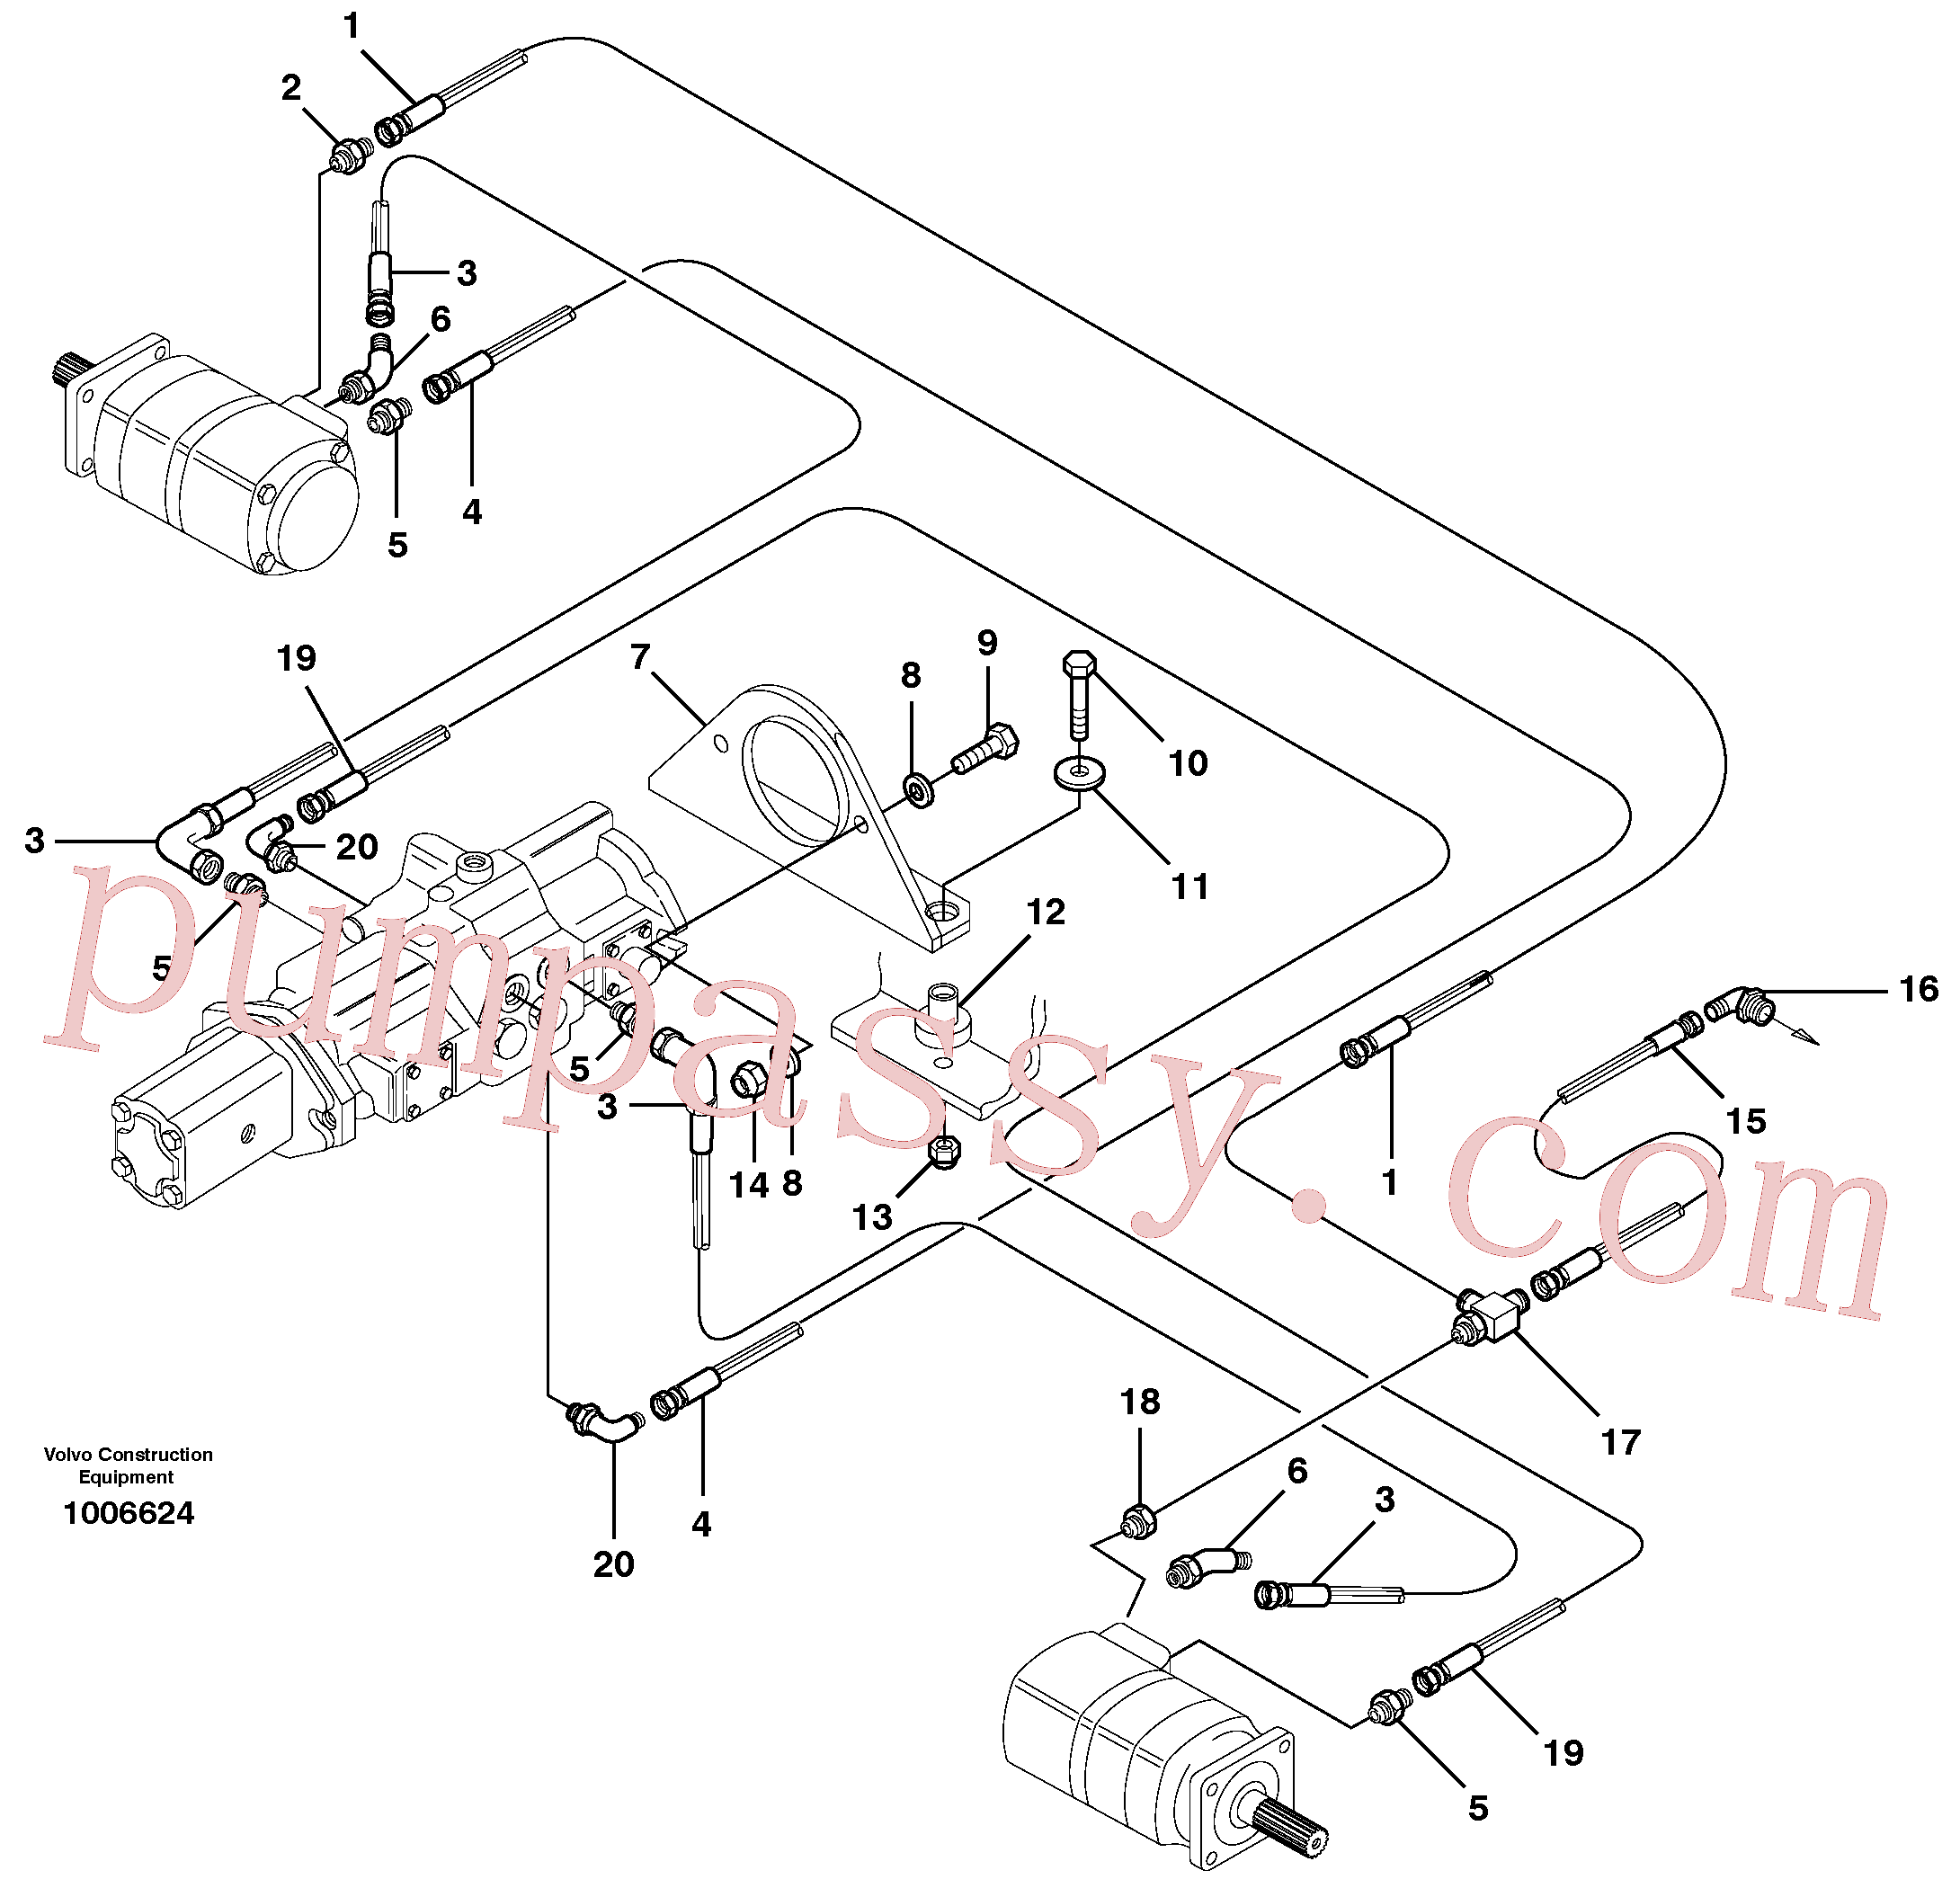 VOE11841167 for Volvo Hydraulic system Transport(1006624 assembly)